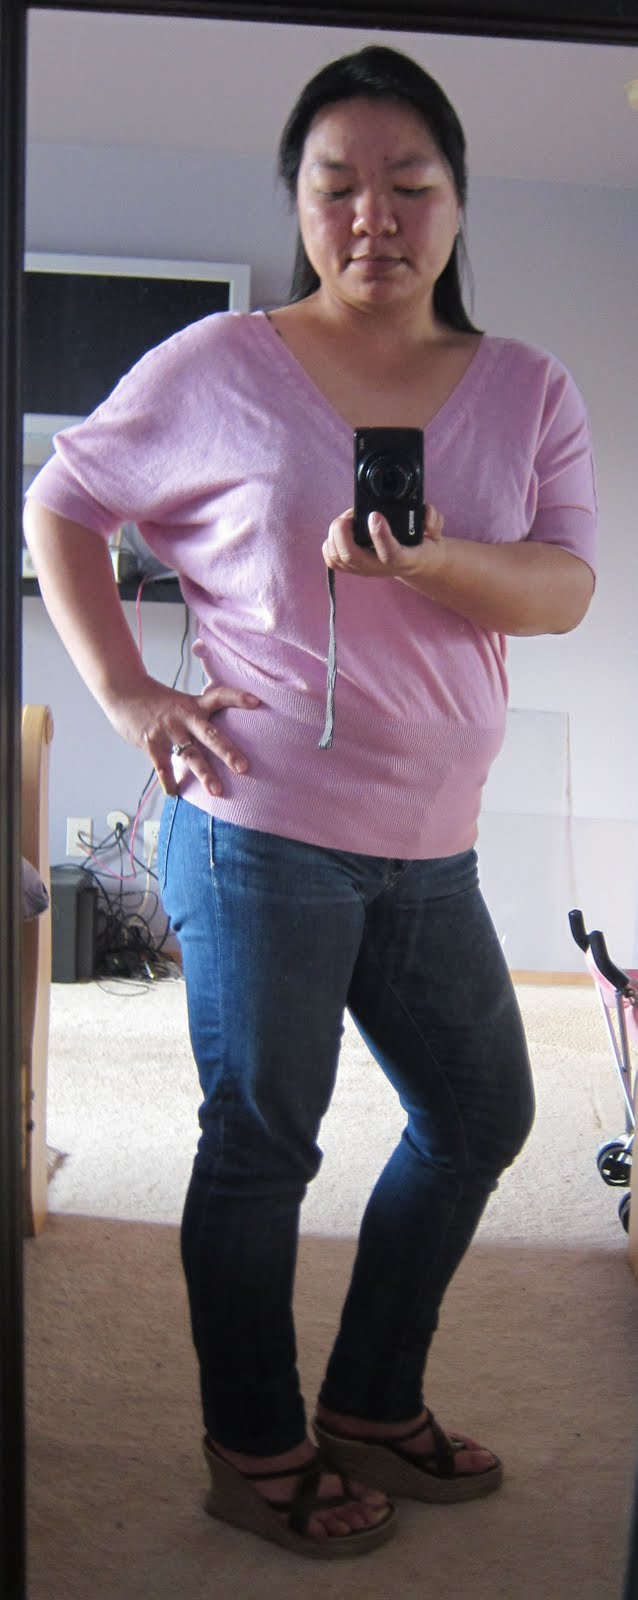 Fat People Wearing Skinny Jeans - Bing images